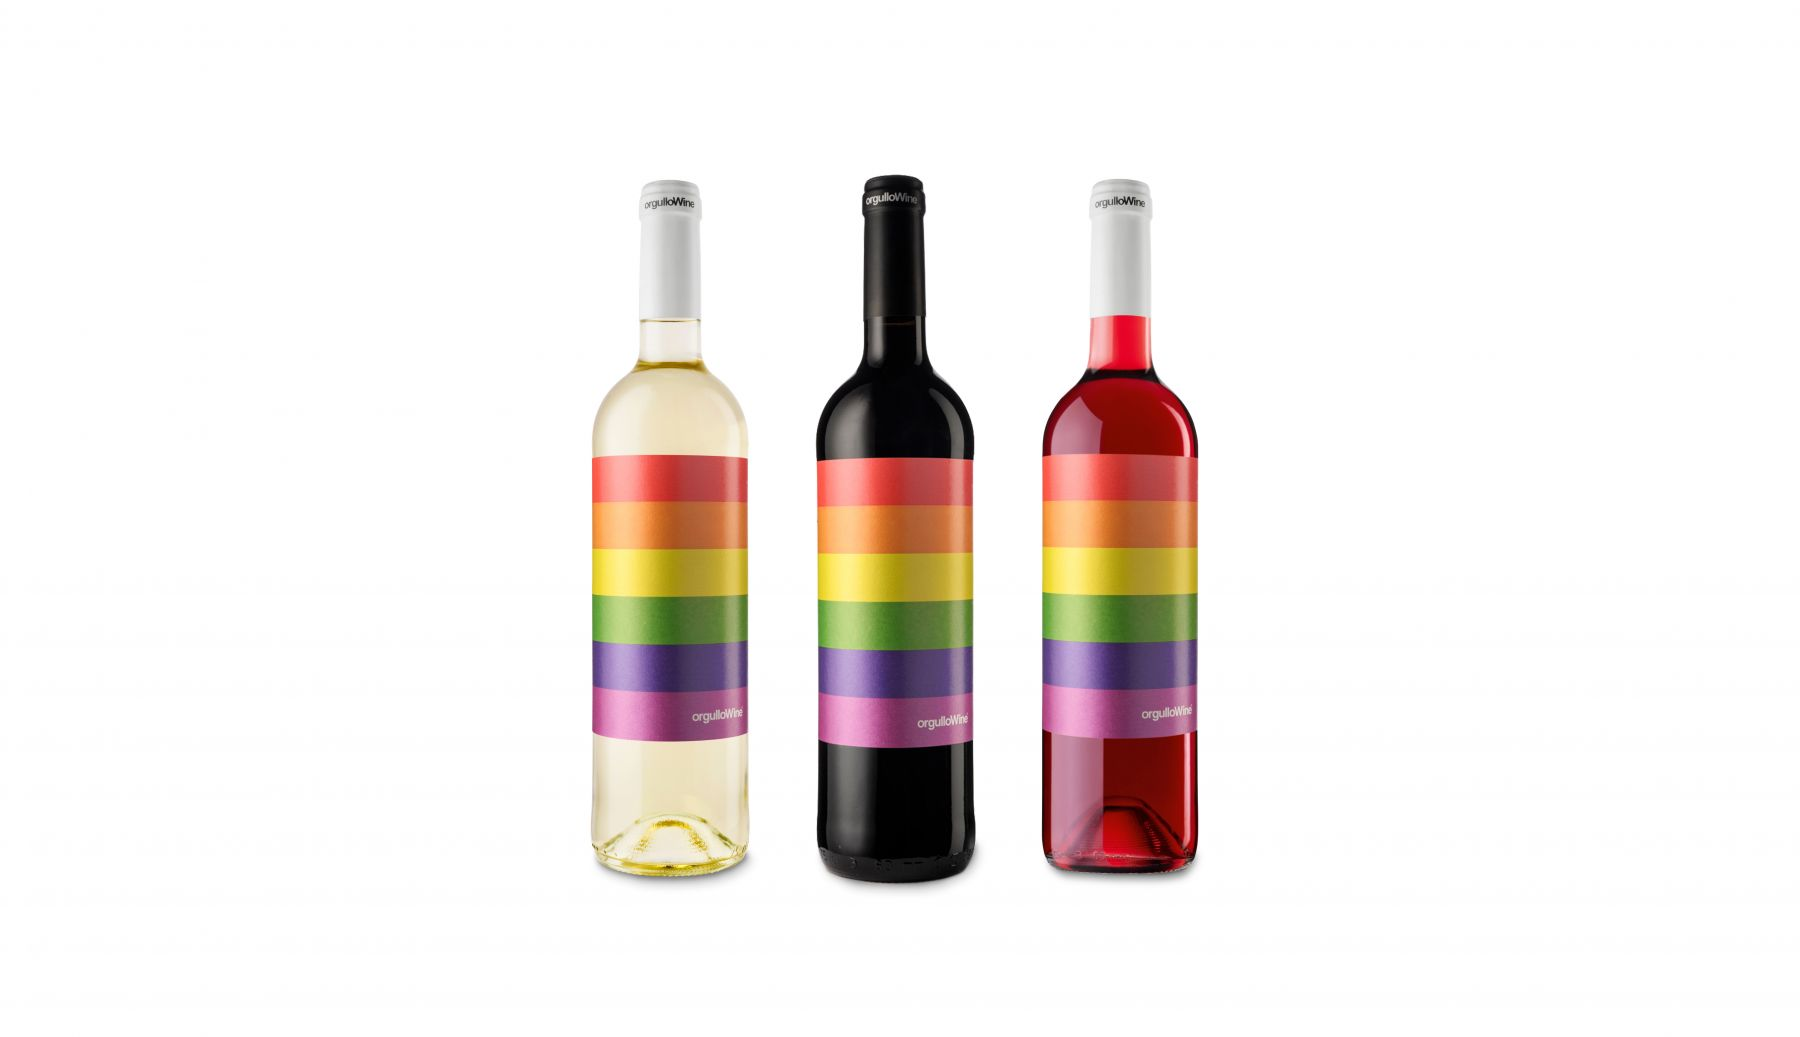 orgullowine-diseno-marca-web-y-etiqueta-para-vino--marketing-on-line